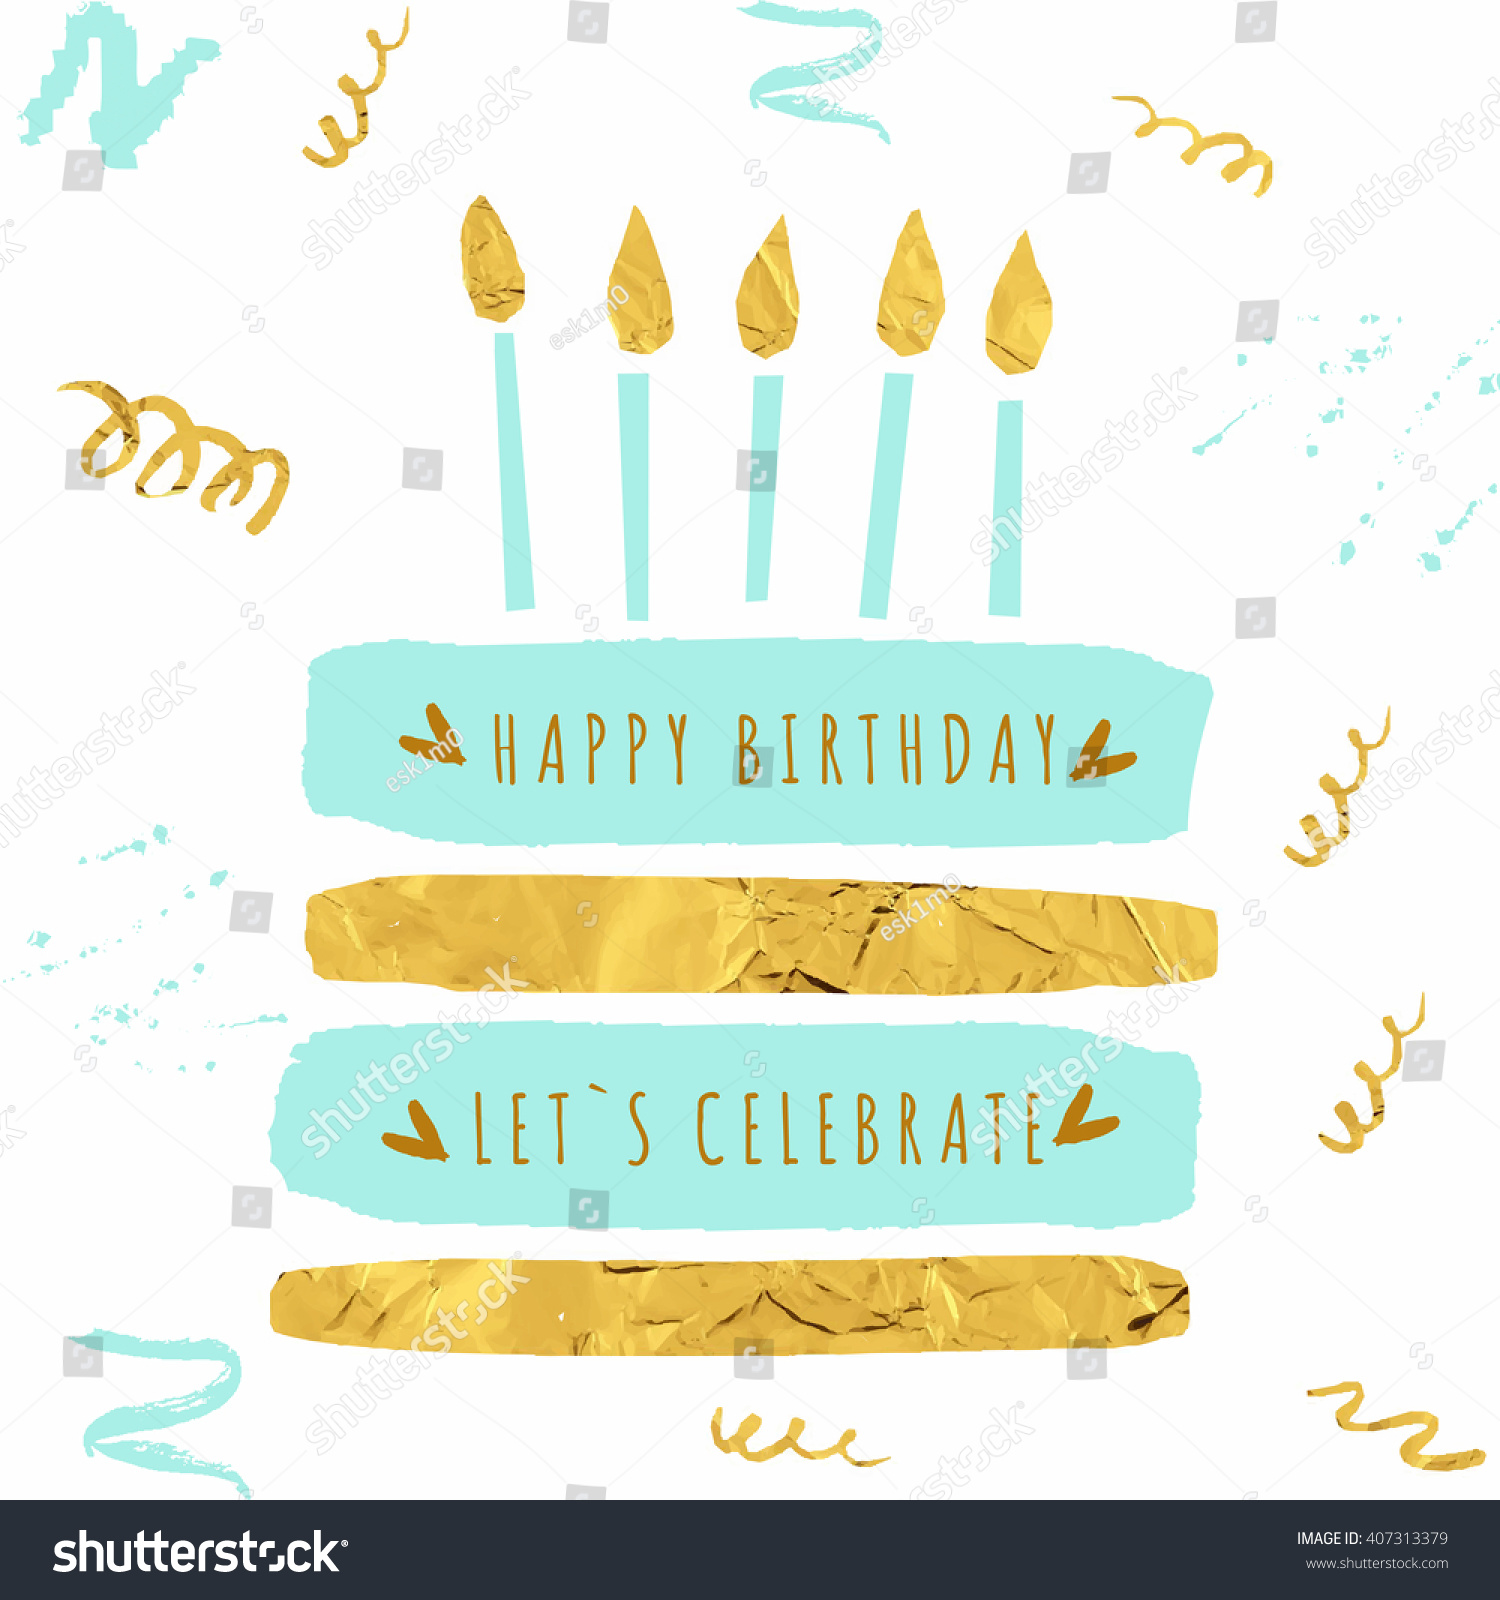 Cute Happy Birthday Card With Cake Candles And Trendy Gold Texture Vector Illustration